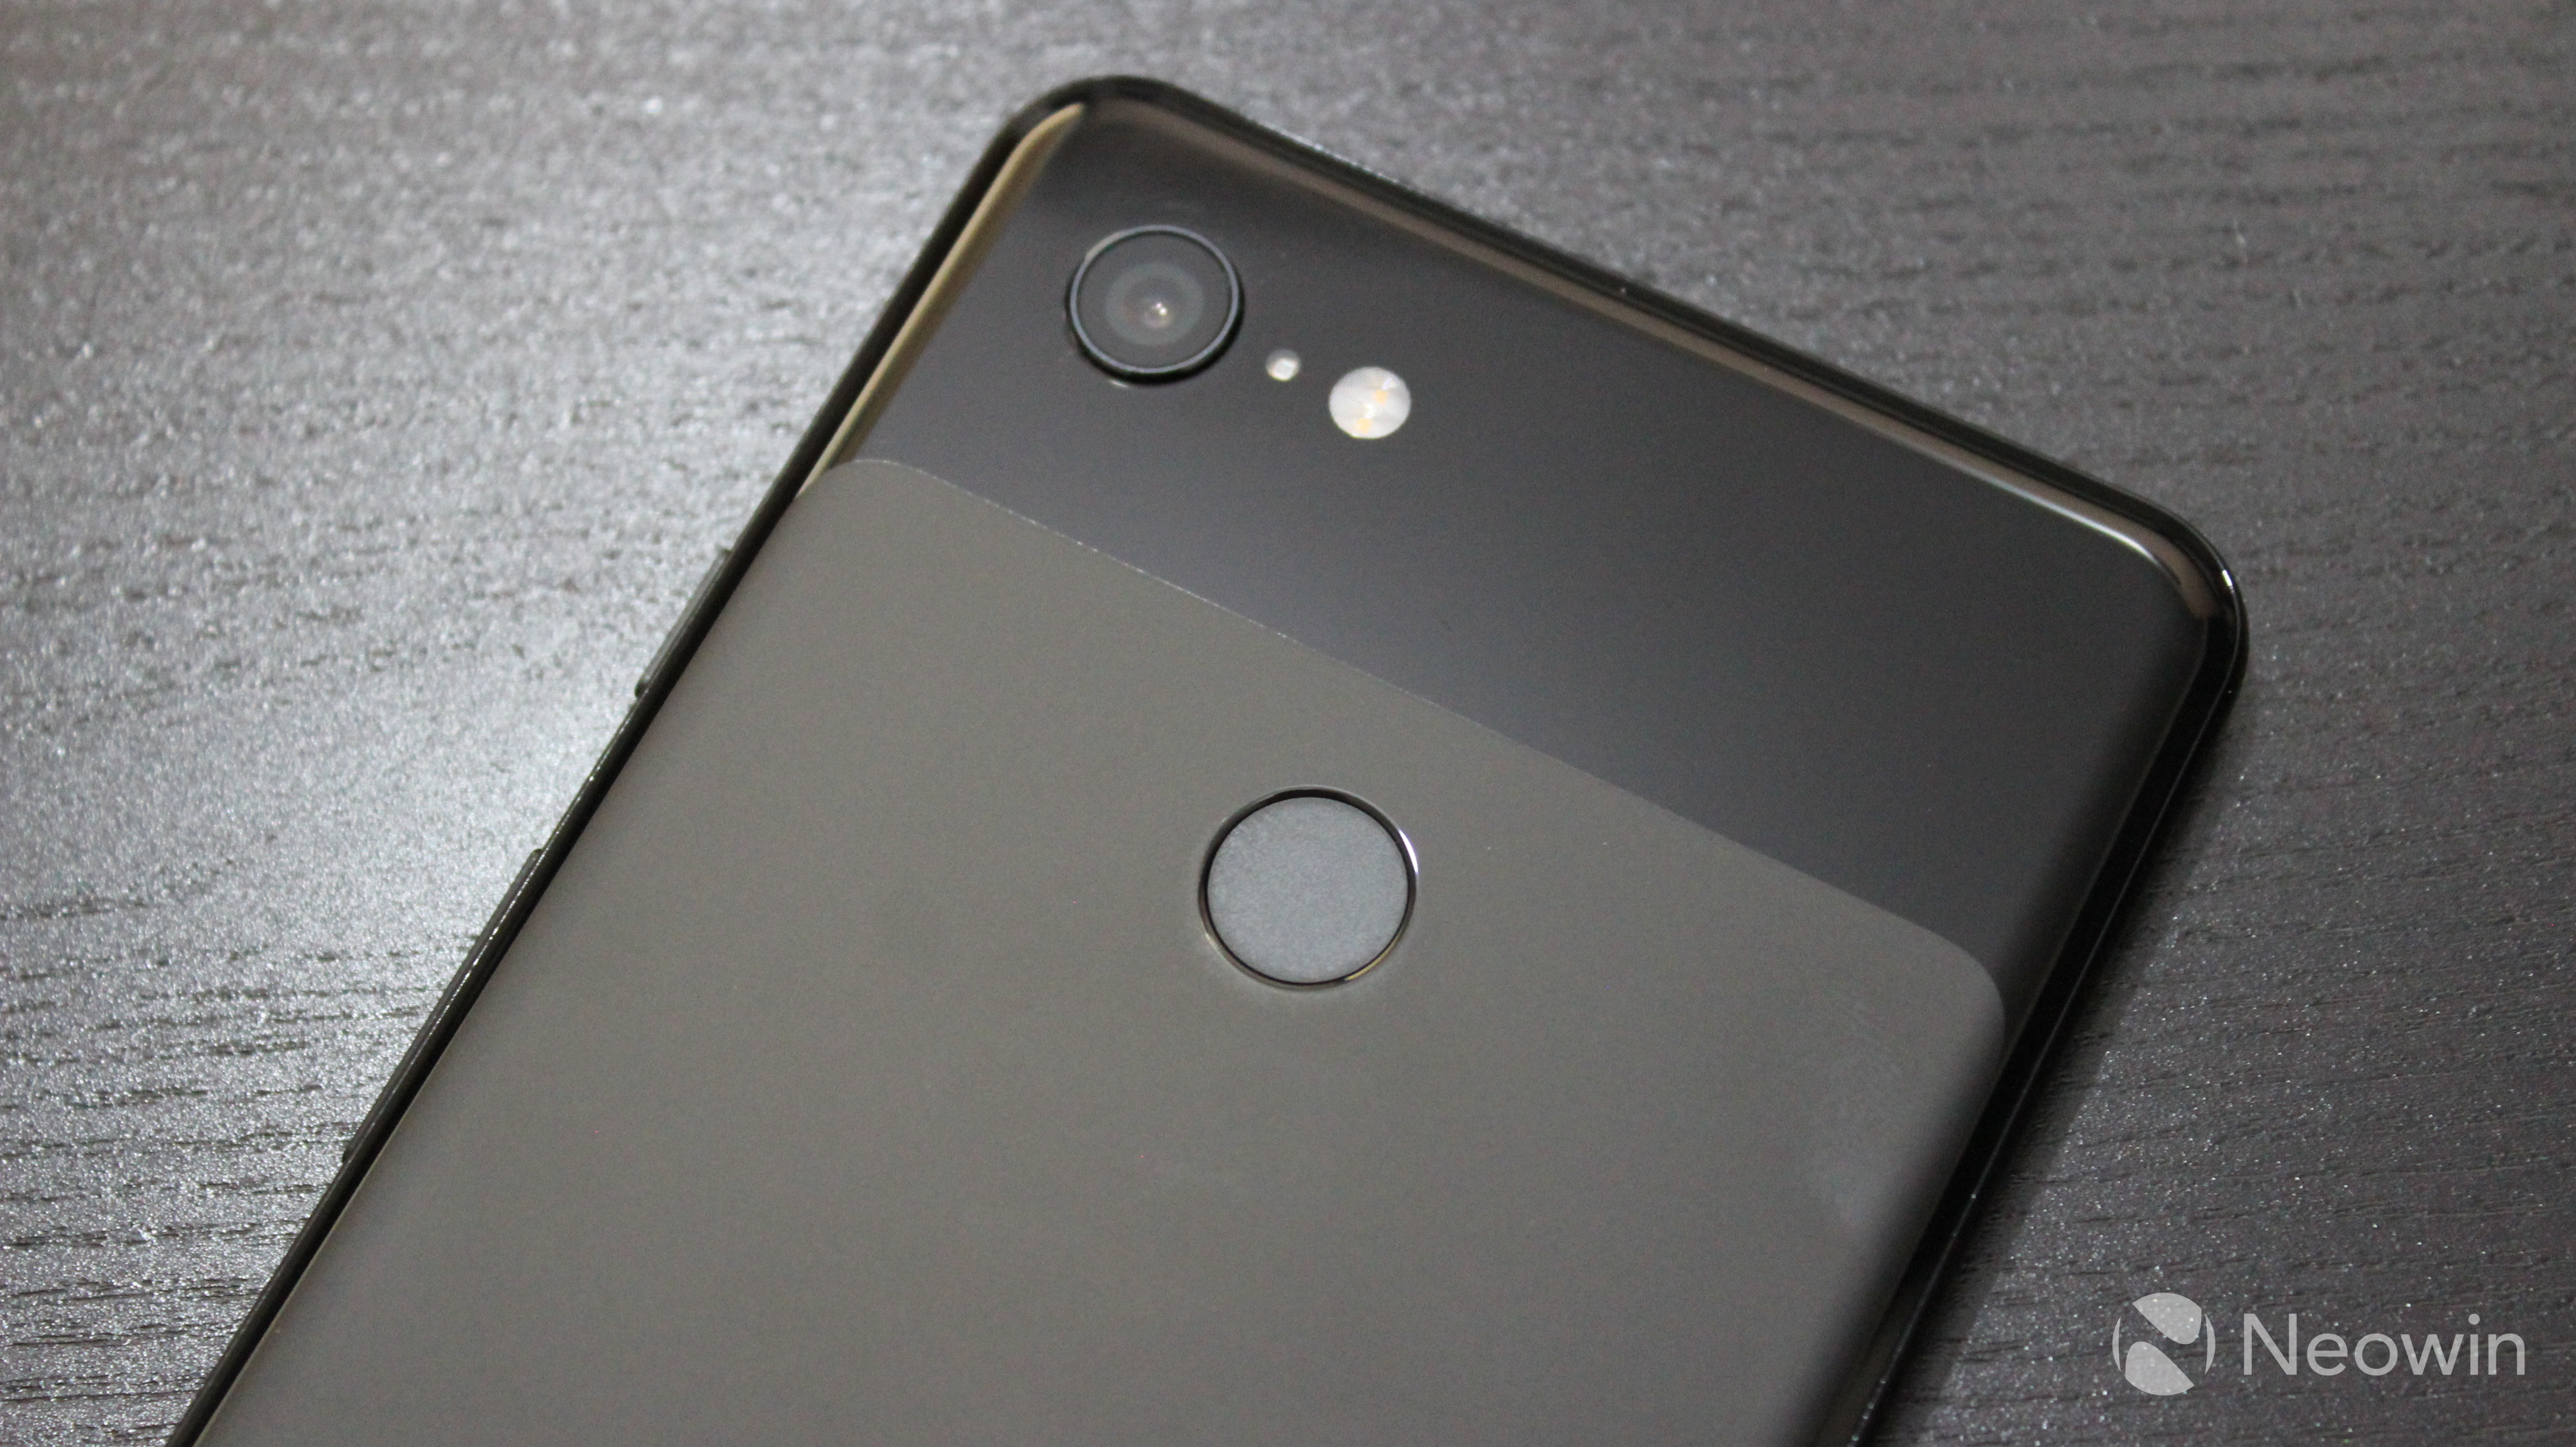 Google is selling the Pixel 3 and Pixel 3 XL through Fi for $399 and